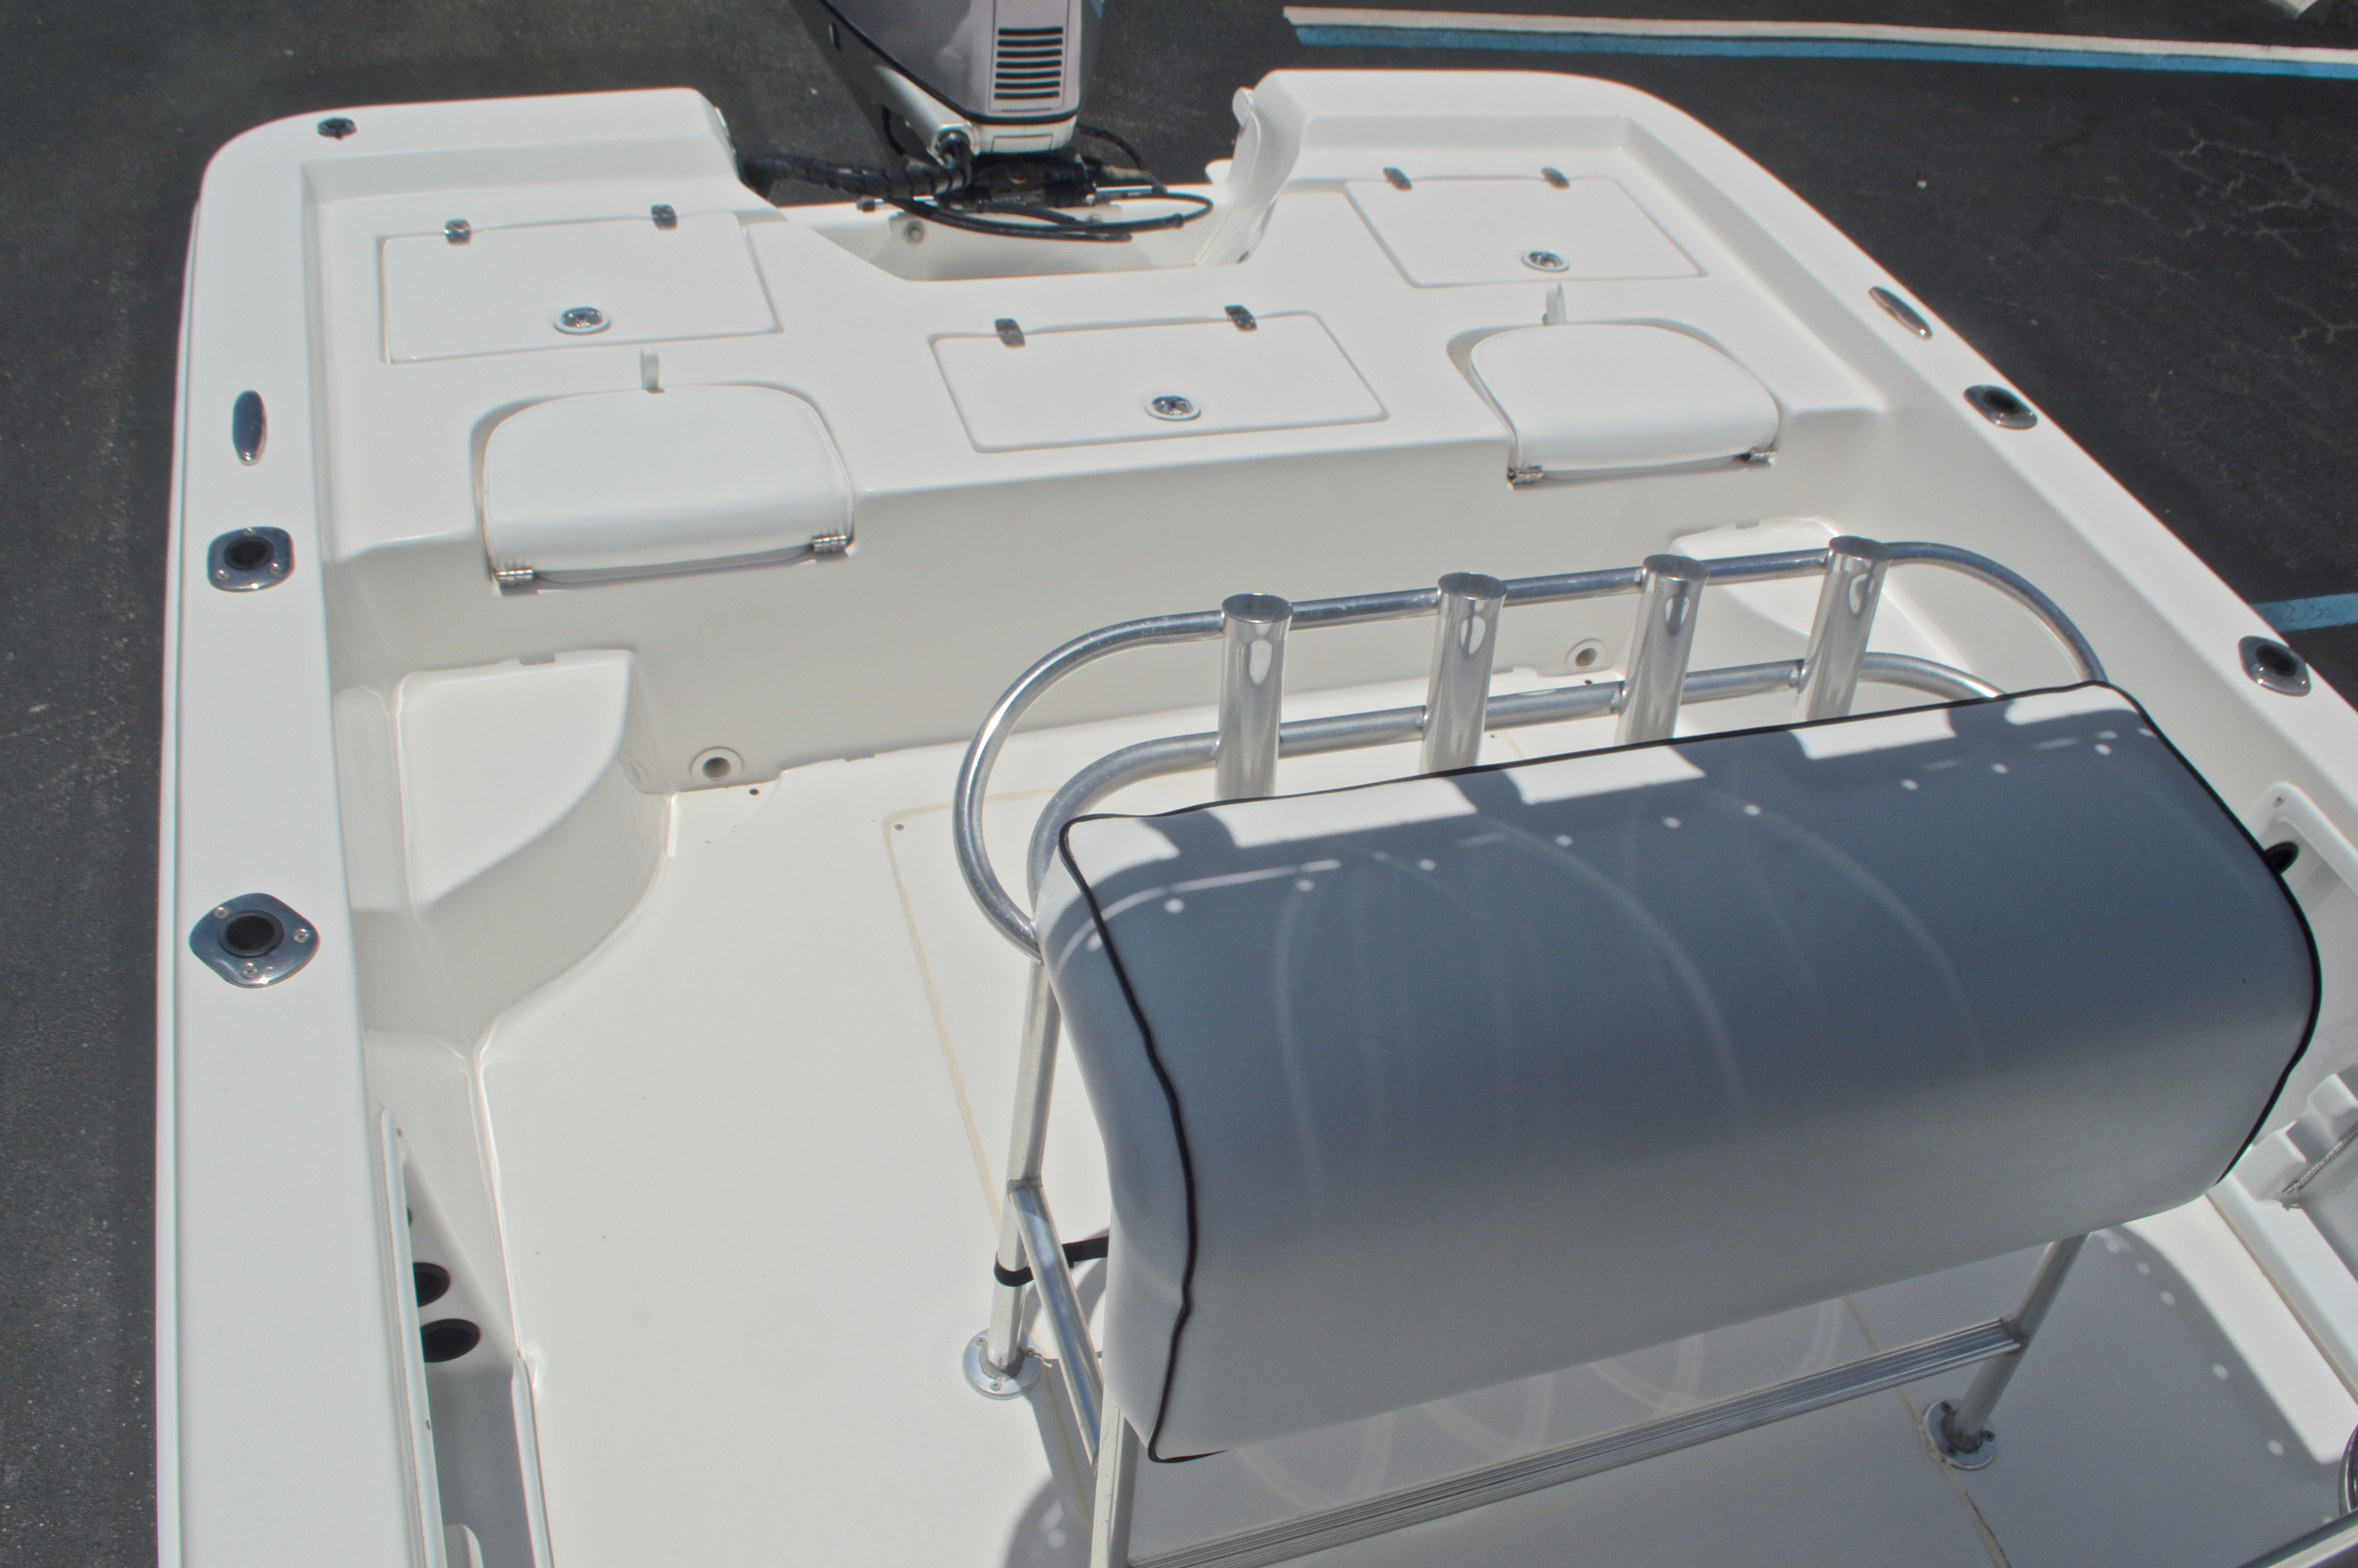 Thumbnail 18 for Used 2005 Sea Chaser 245 Bay Runner LX boat for sale in West Palm Beach, FL